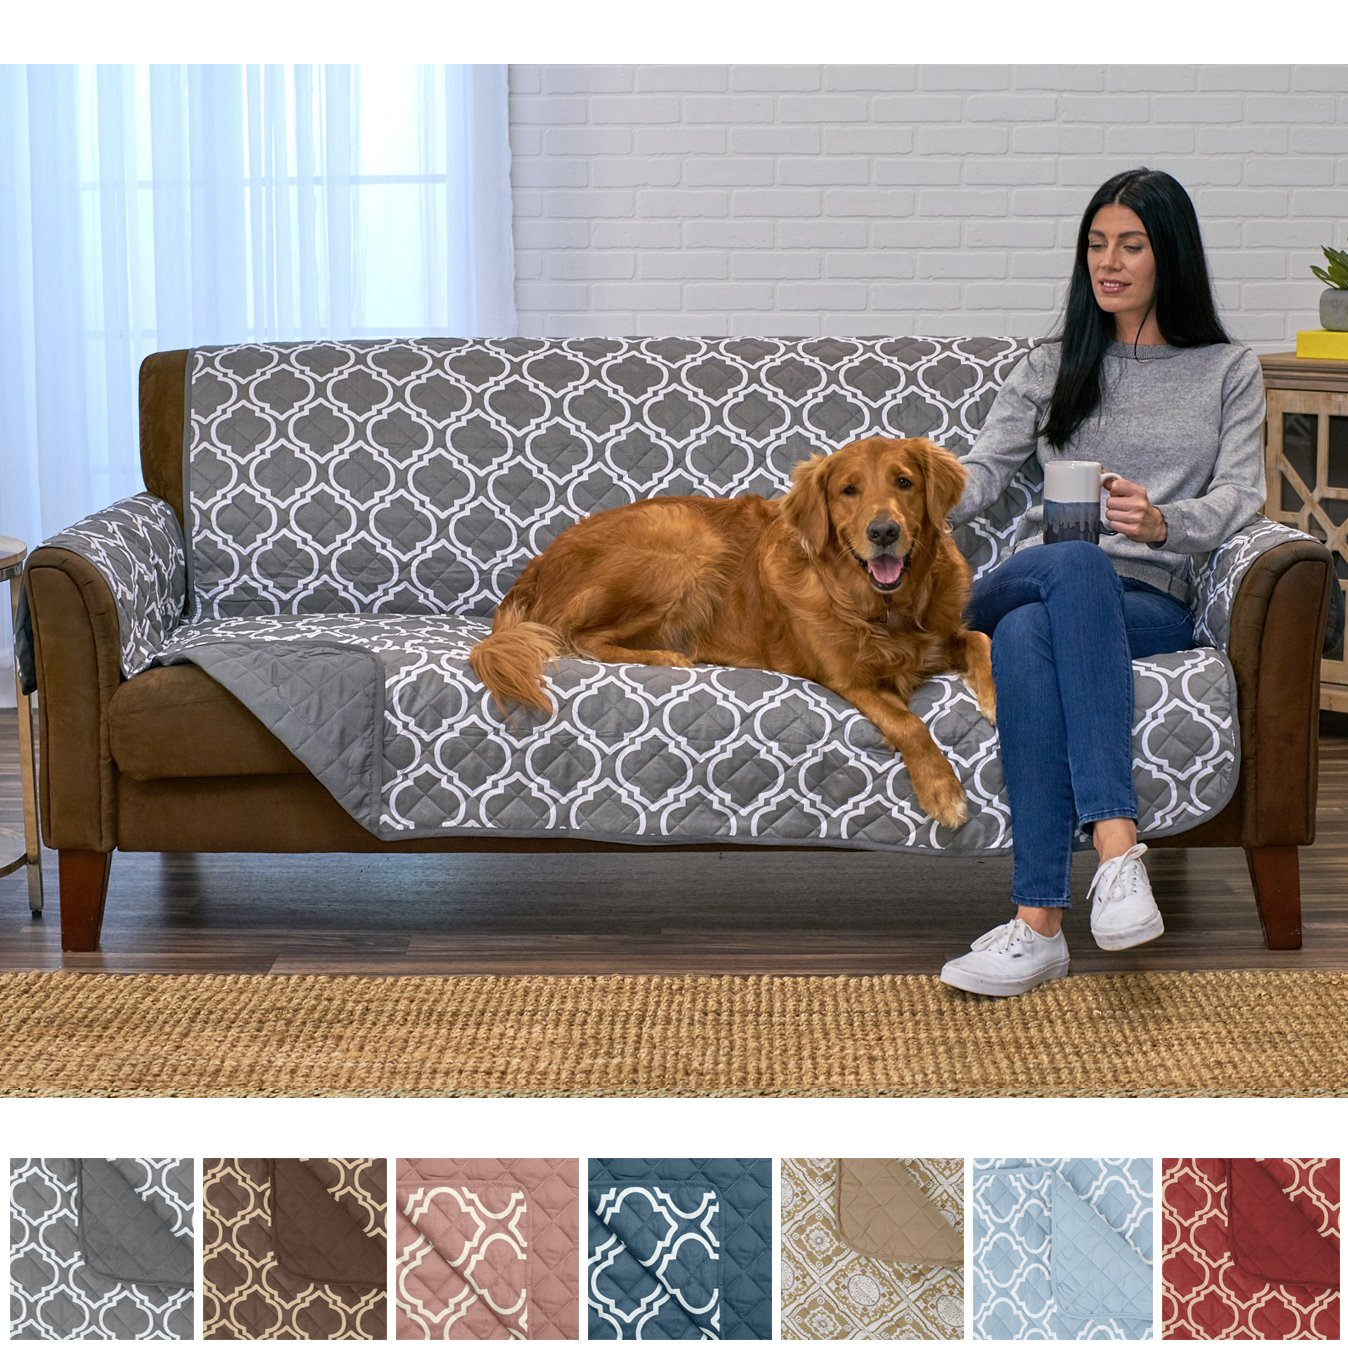 Home Fashion Designs Adalyn Collection Deluxe Reversible Quilted Furniture Protector. Beautiful Print on One Side/Solid Color on The Other for Two Fresh Looks Brand. (Sofa/Couch, Charcoal)